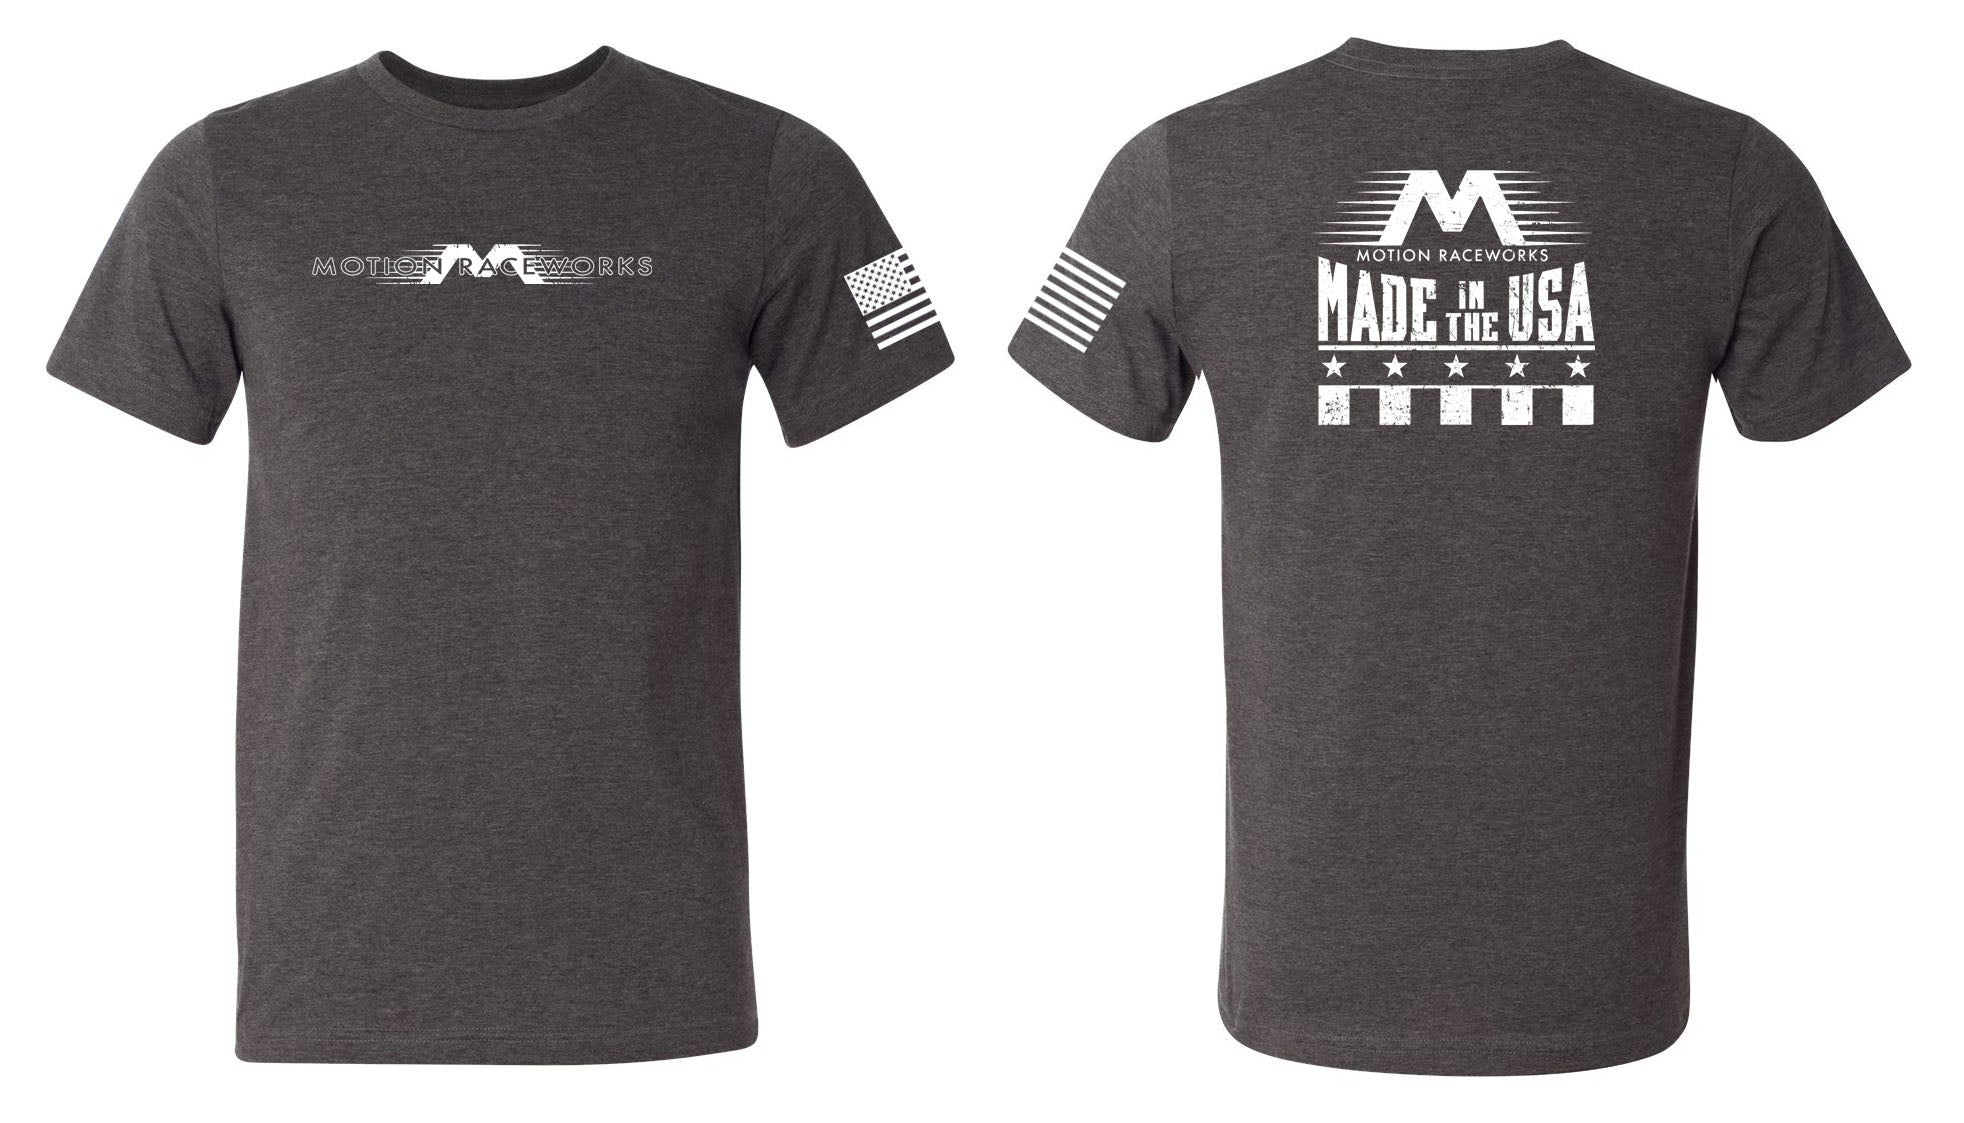 Made in the USA T-Shirt Sizes XS-4X - Motion Raceworks